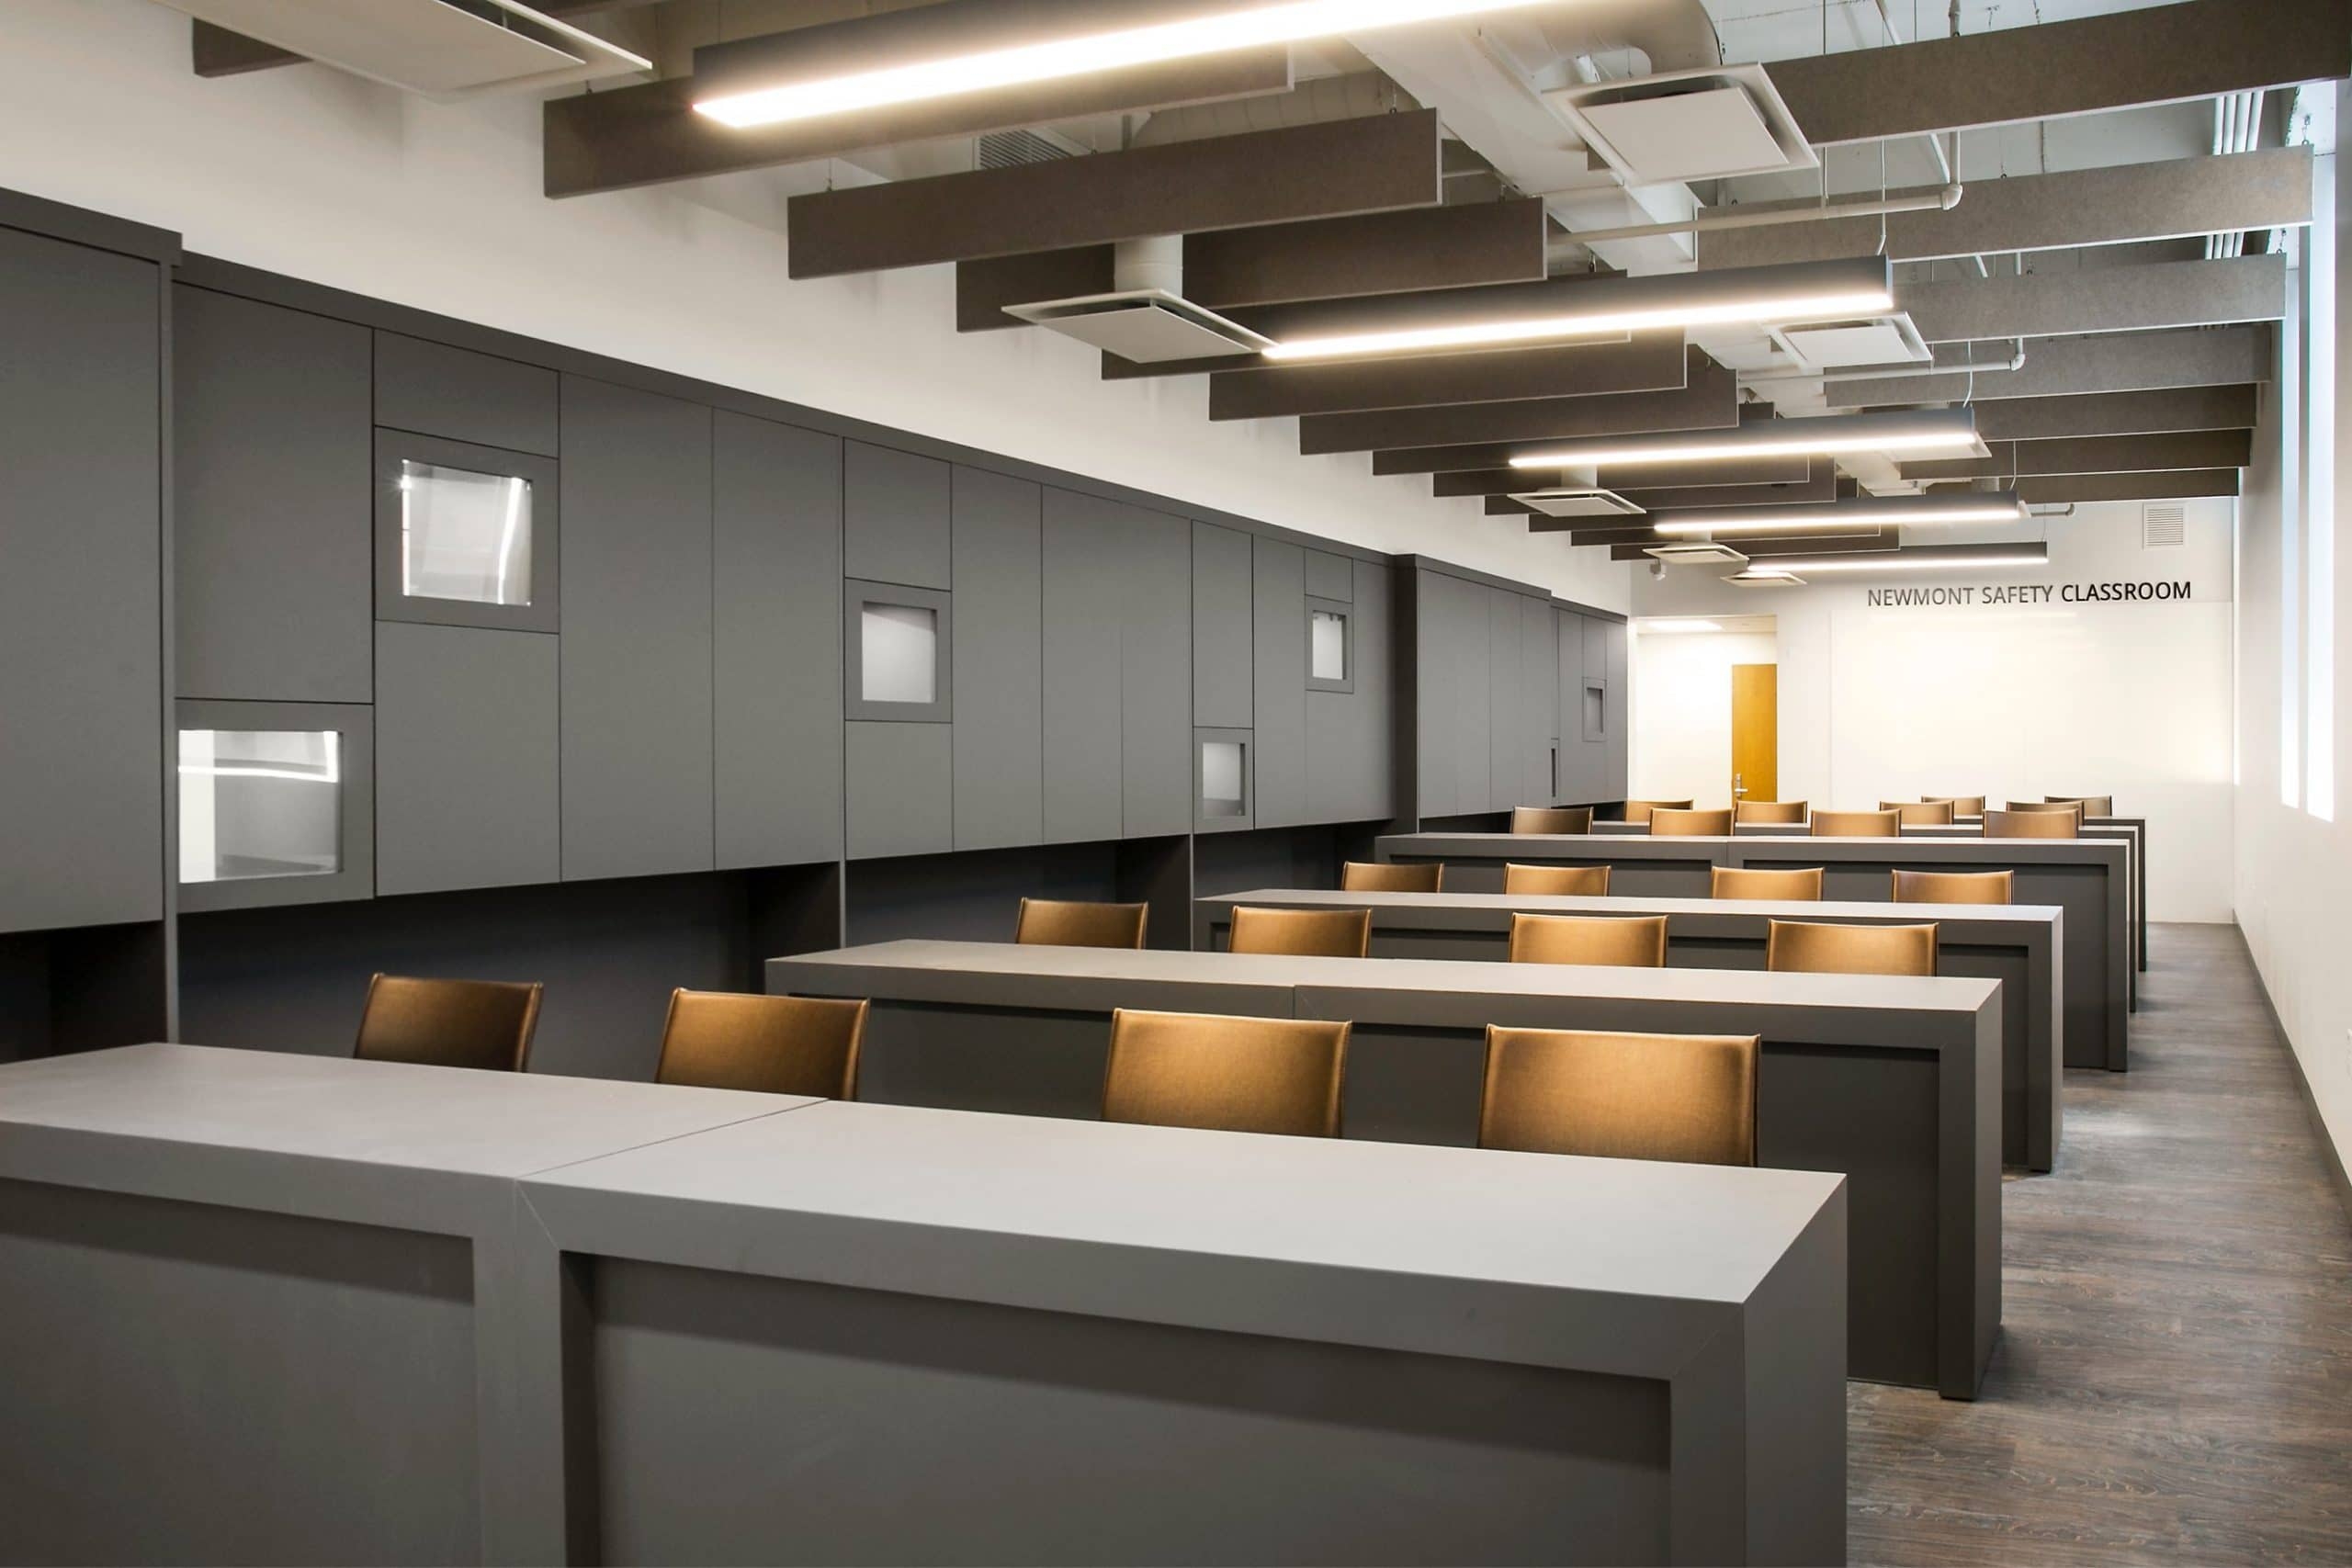 Classroom in the University of Utah Newmont Safety Classroom, architectural design by Elliott Workgroup